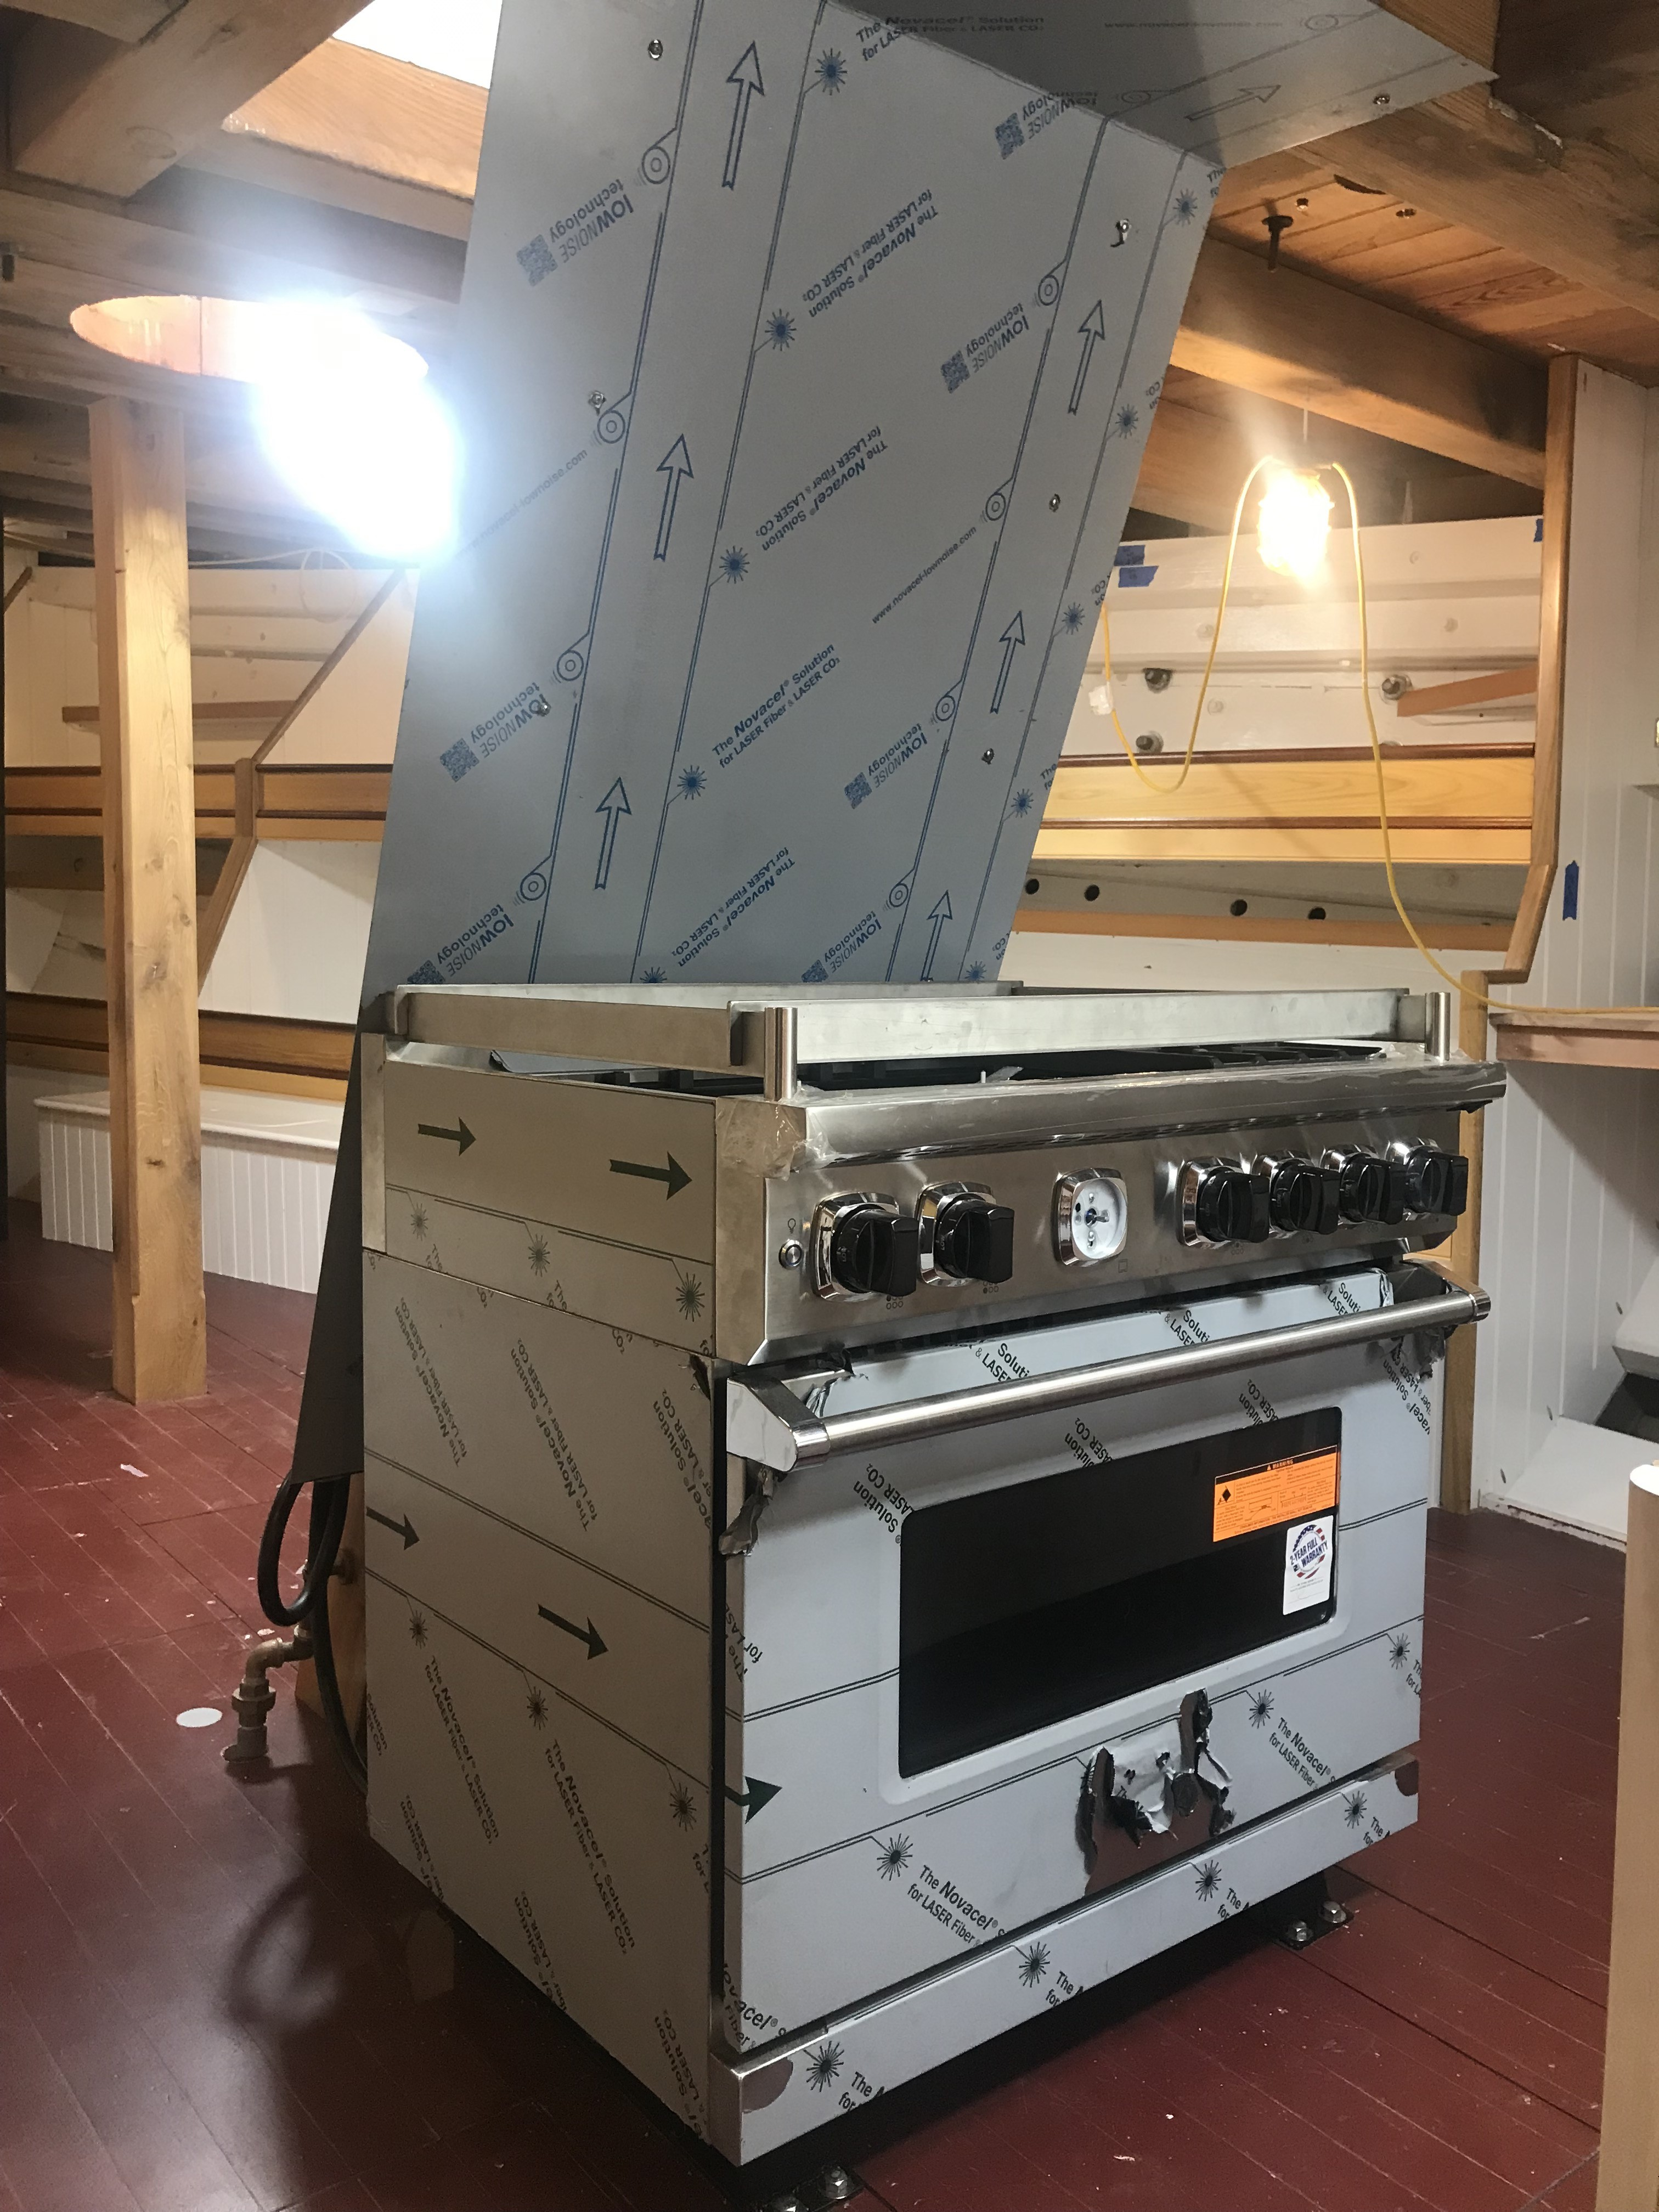 What a beautiful piece of equipment!  The Viking Series 7 Range has been installed in the Galley complete with a custom fireproof metal bulkhead to protect the forward scuttle.  We are all very impressed with how well this fits in the space.